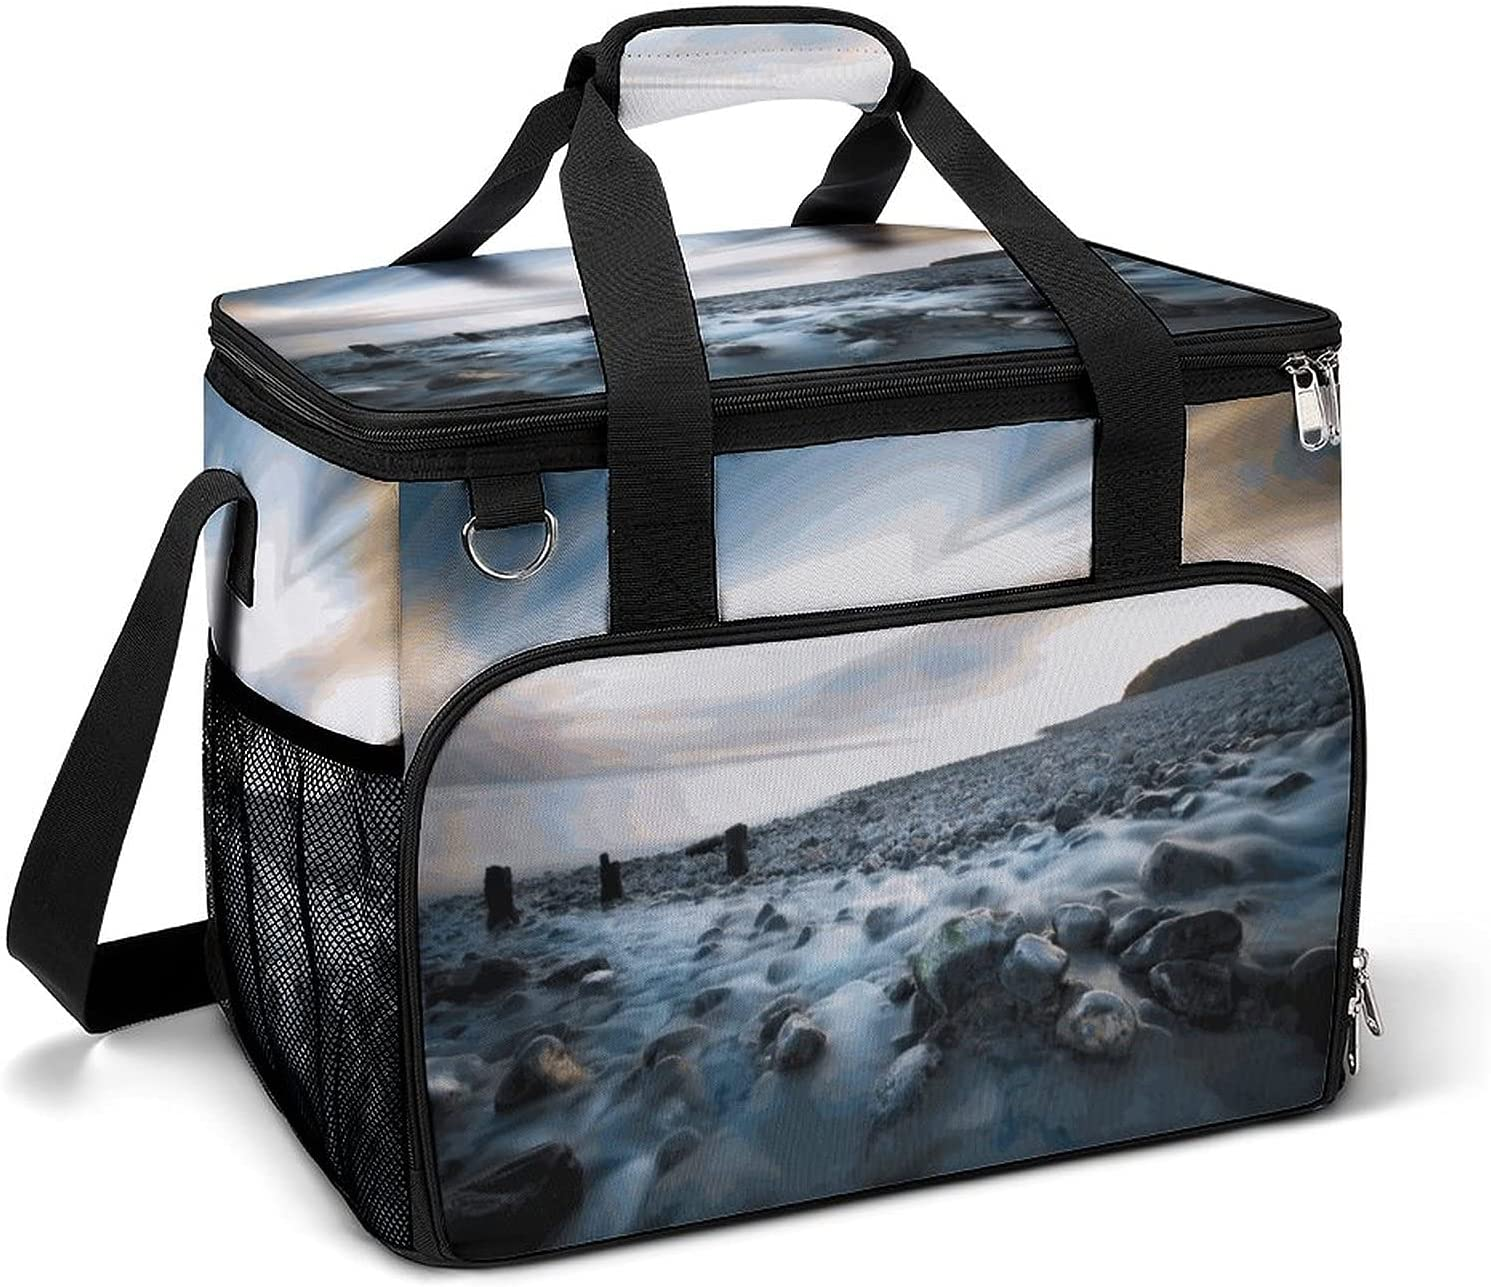 Cooler Ice Bag Planet Space Portable Pattern Capaci Max 78% OFF Courier shipping free shipping Custom Large